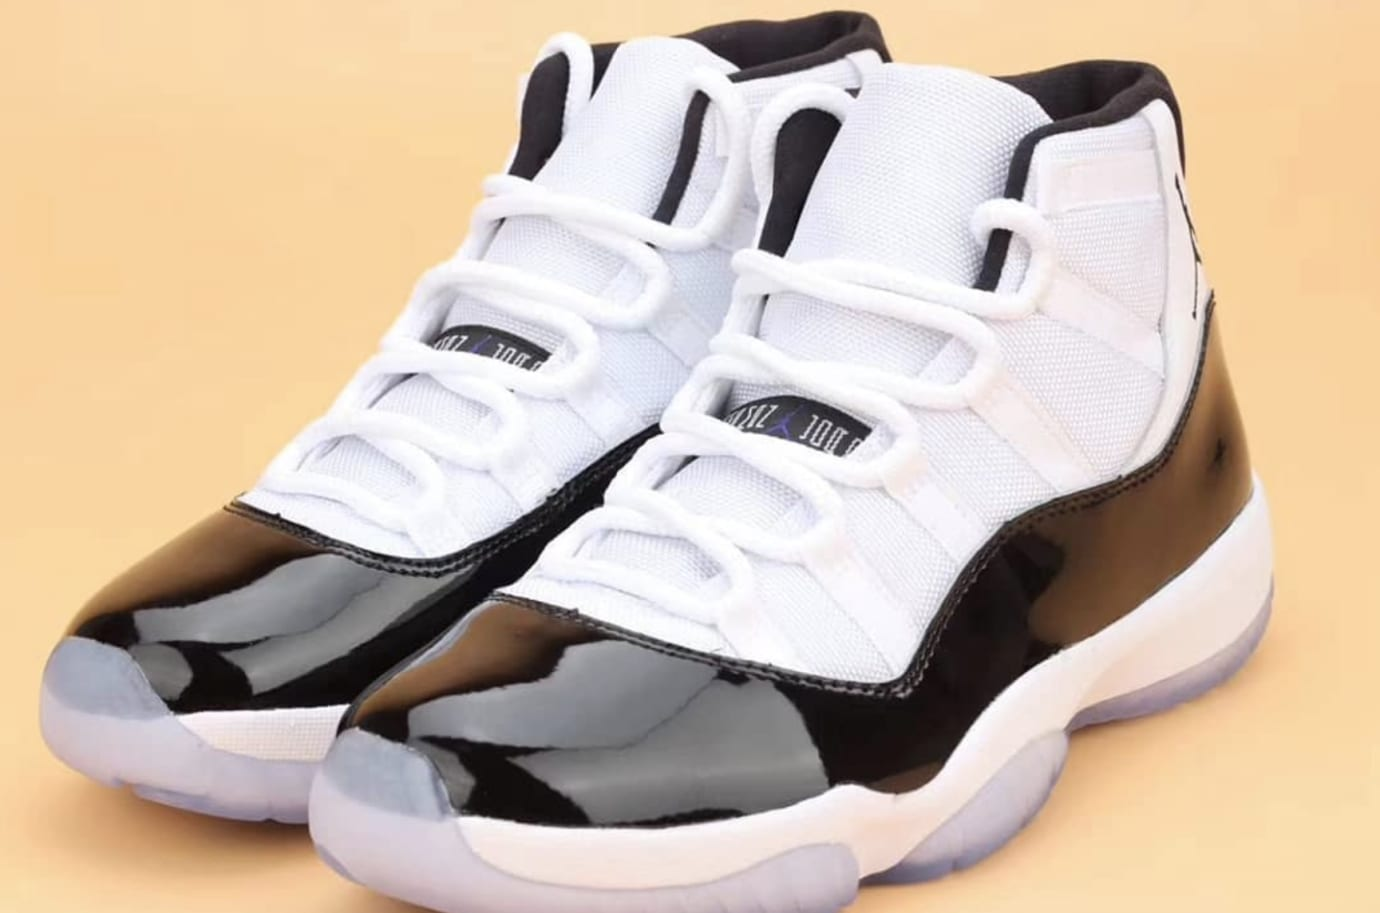 78fcd3dae145df Concord  Air Jordan 11 Returning In 2018 378037-100